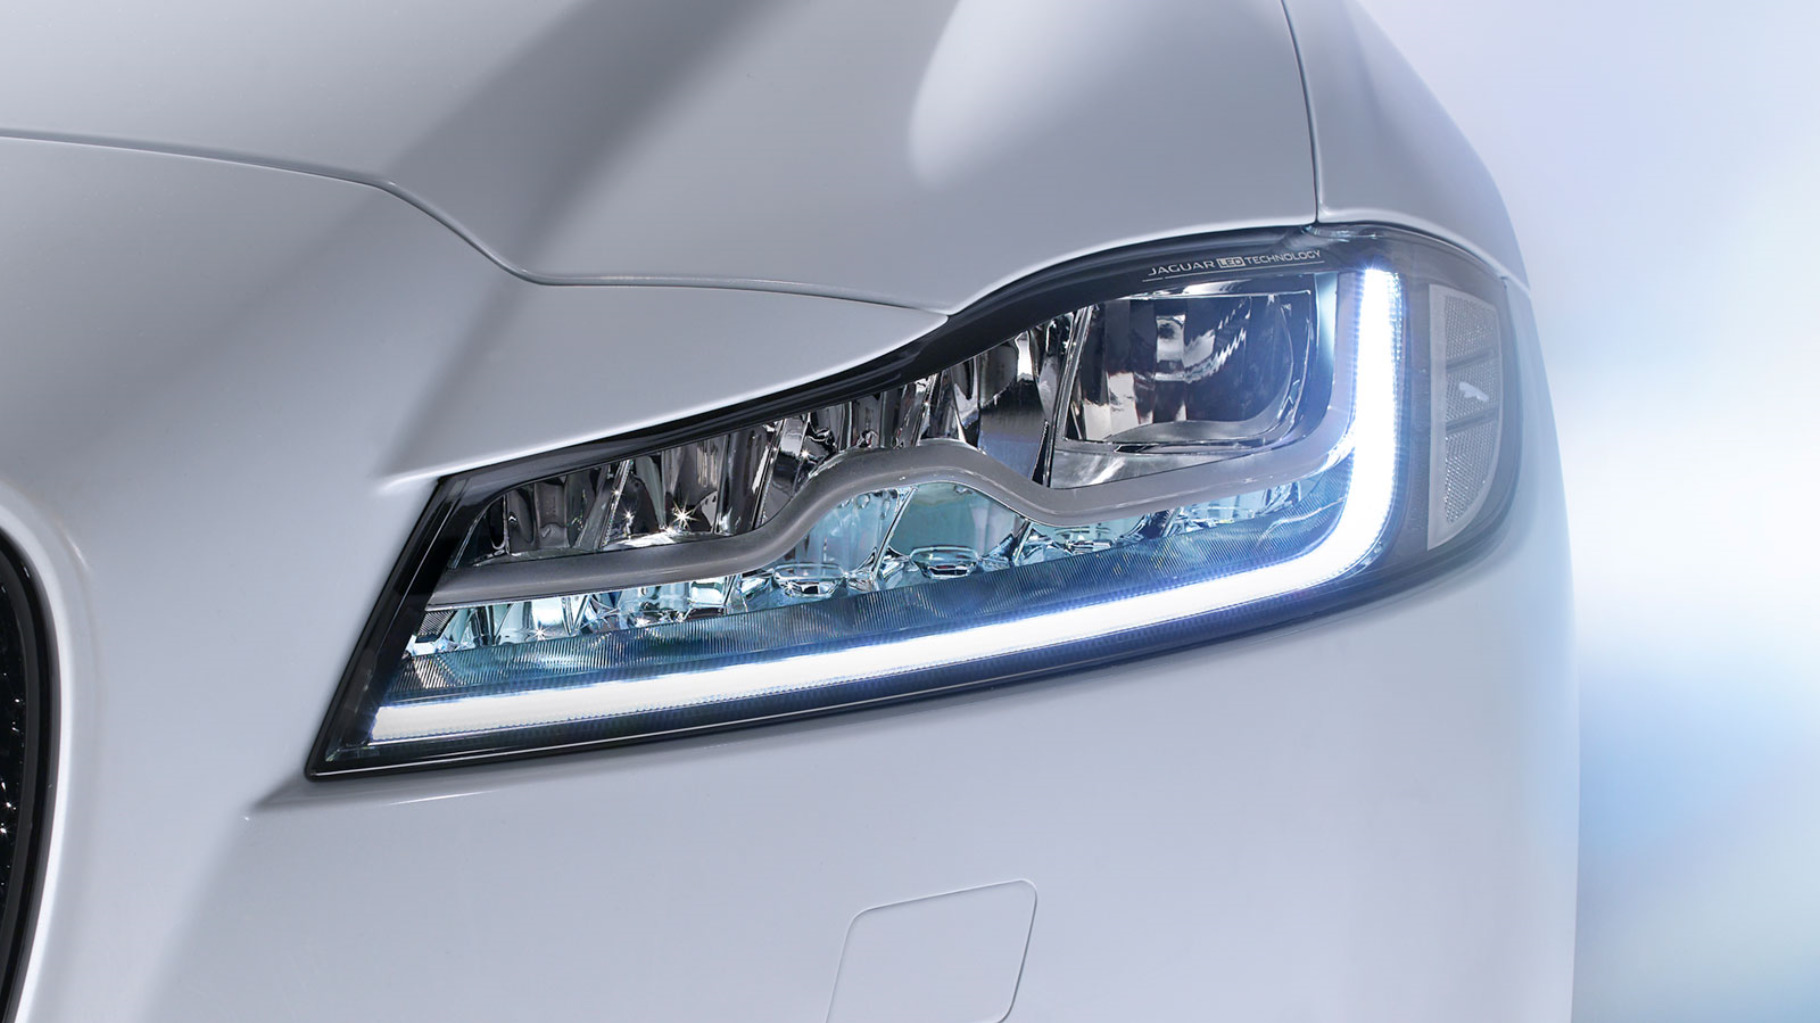 Jaguar XF Automatic Headlamps